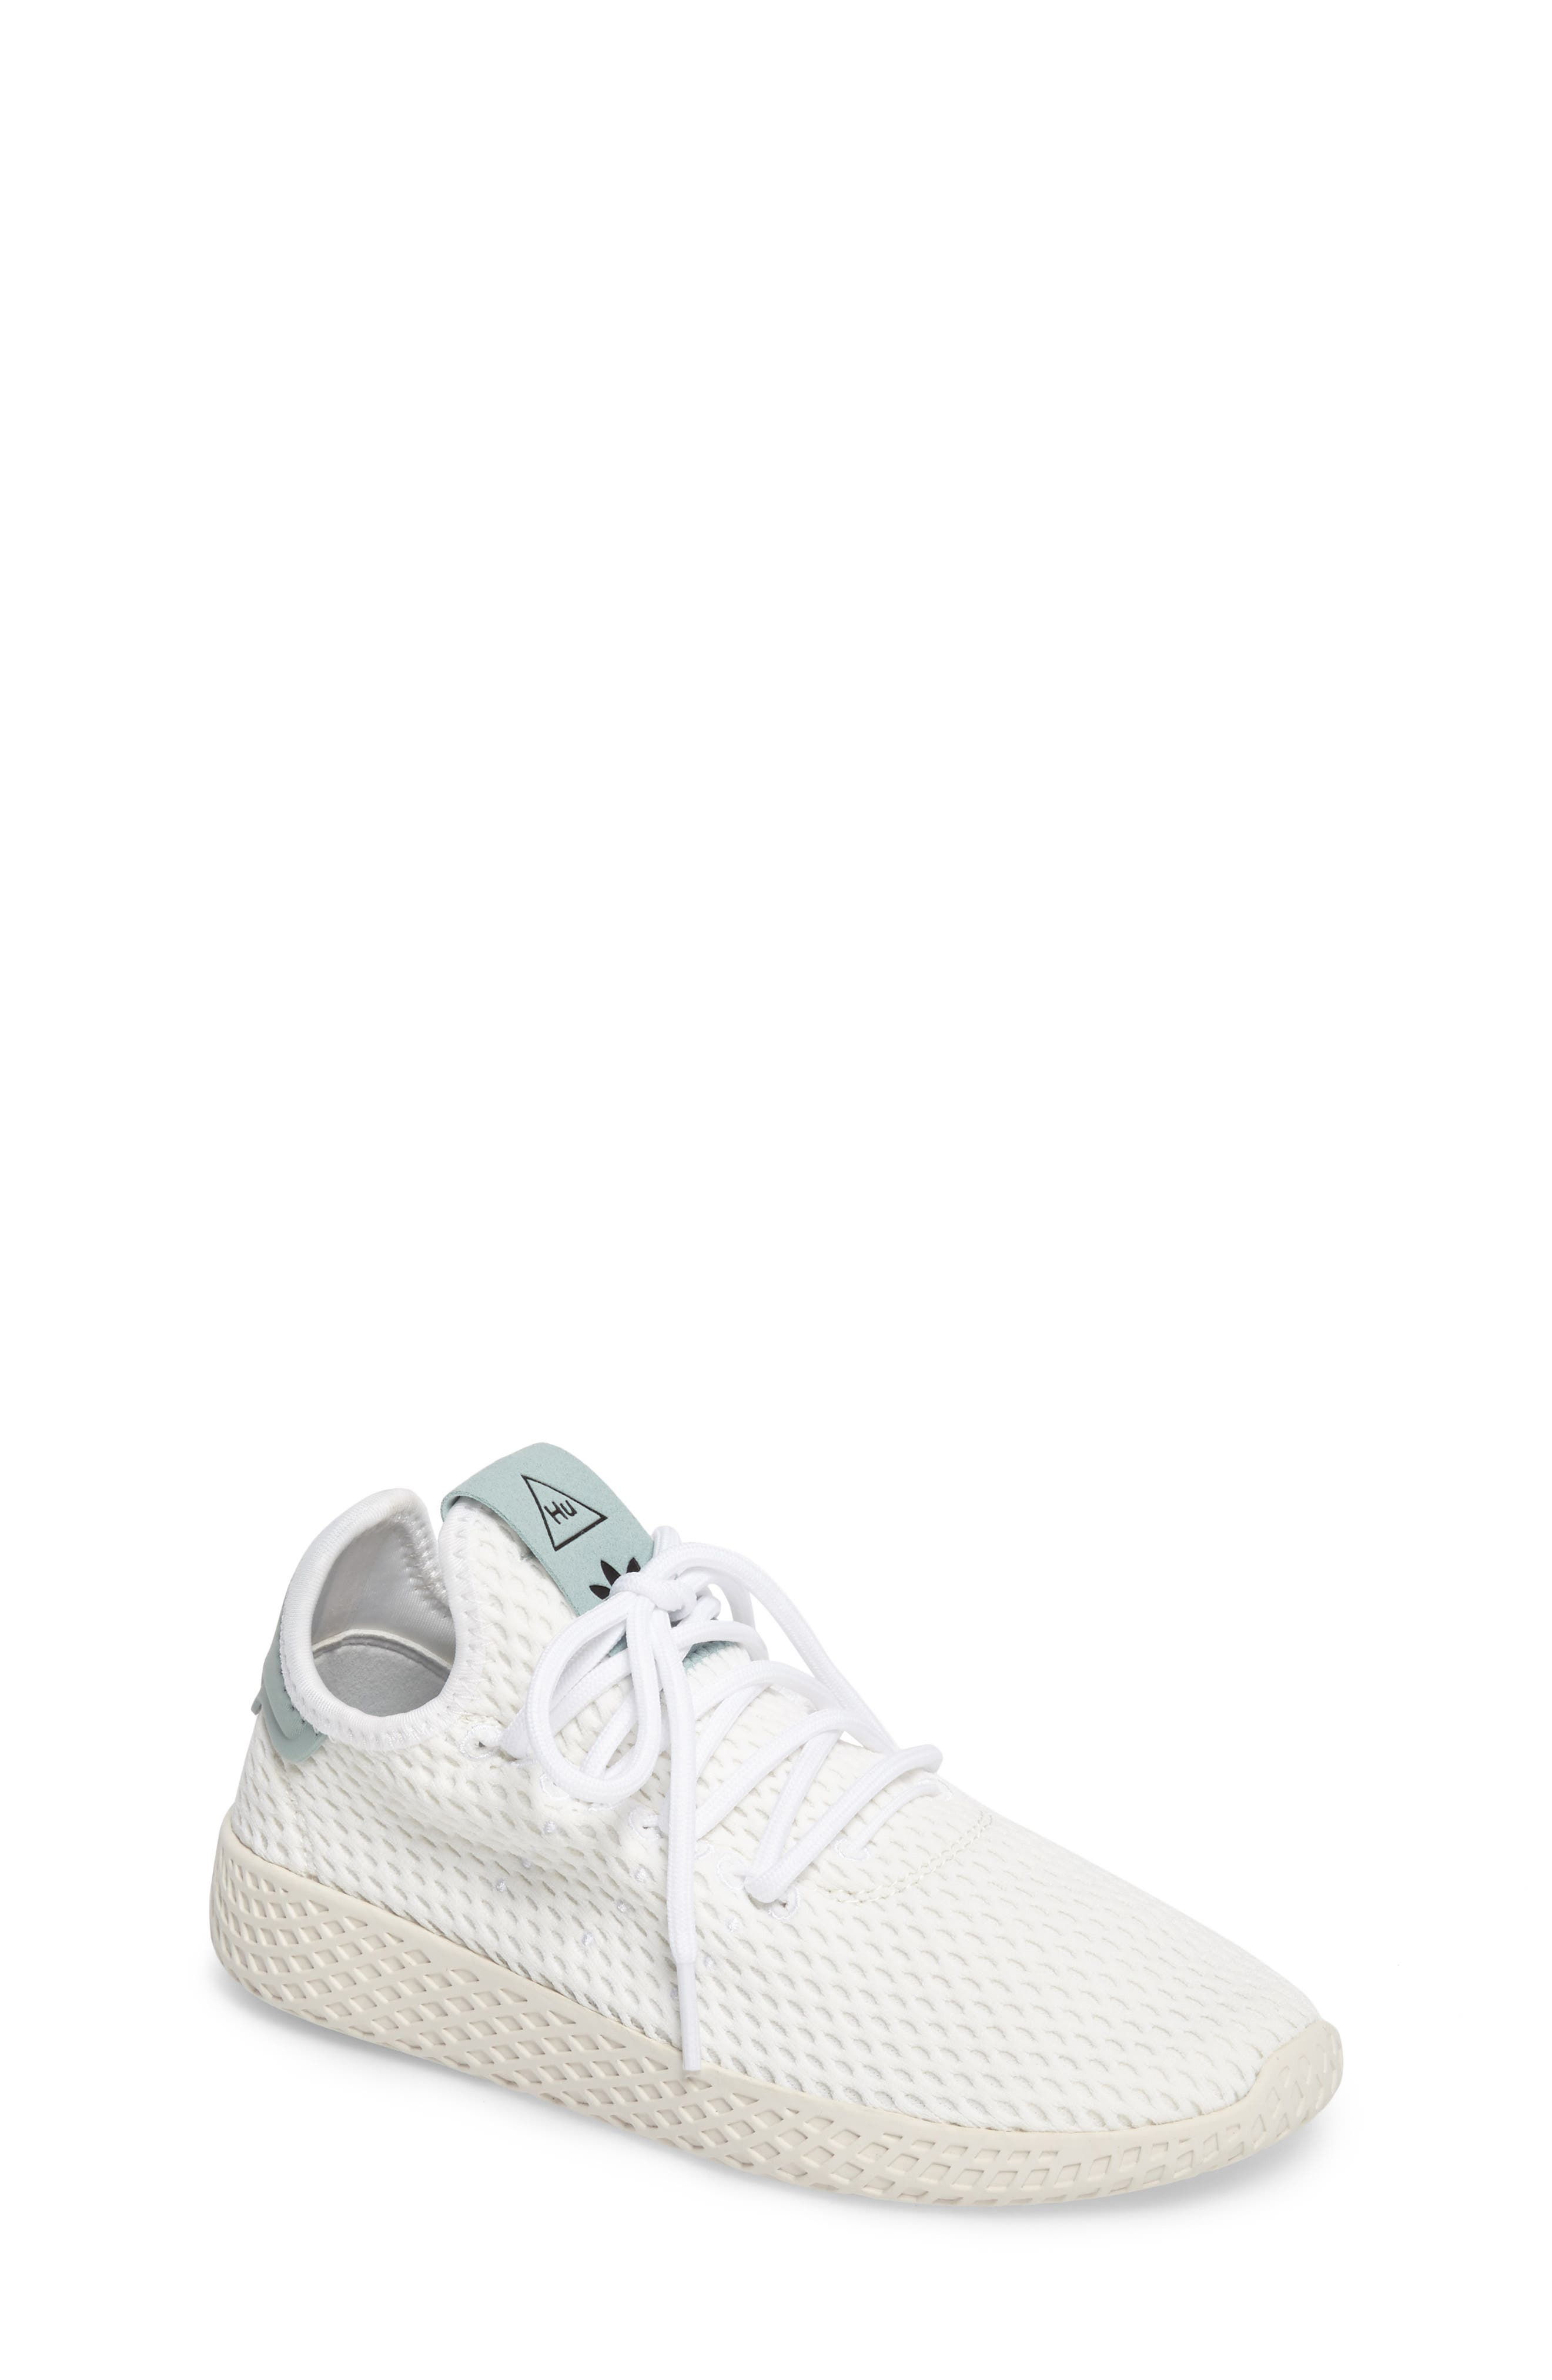 Originals x Pharrell Williams The Summers Mesh Sneaker,                             Main thumbnail 1, color,                             Footwear White/ Linen Green